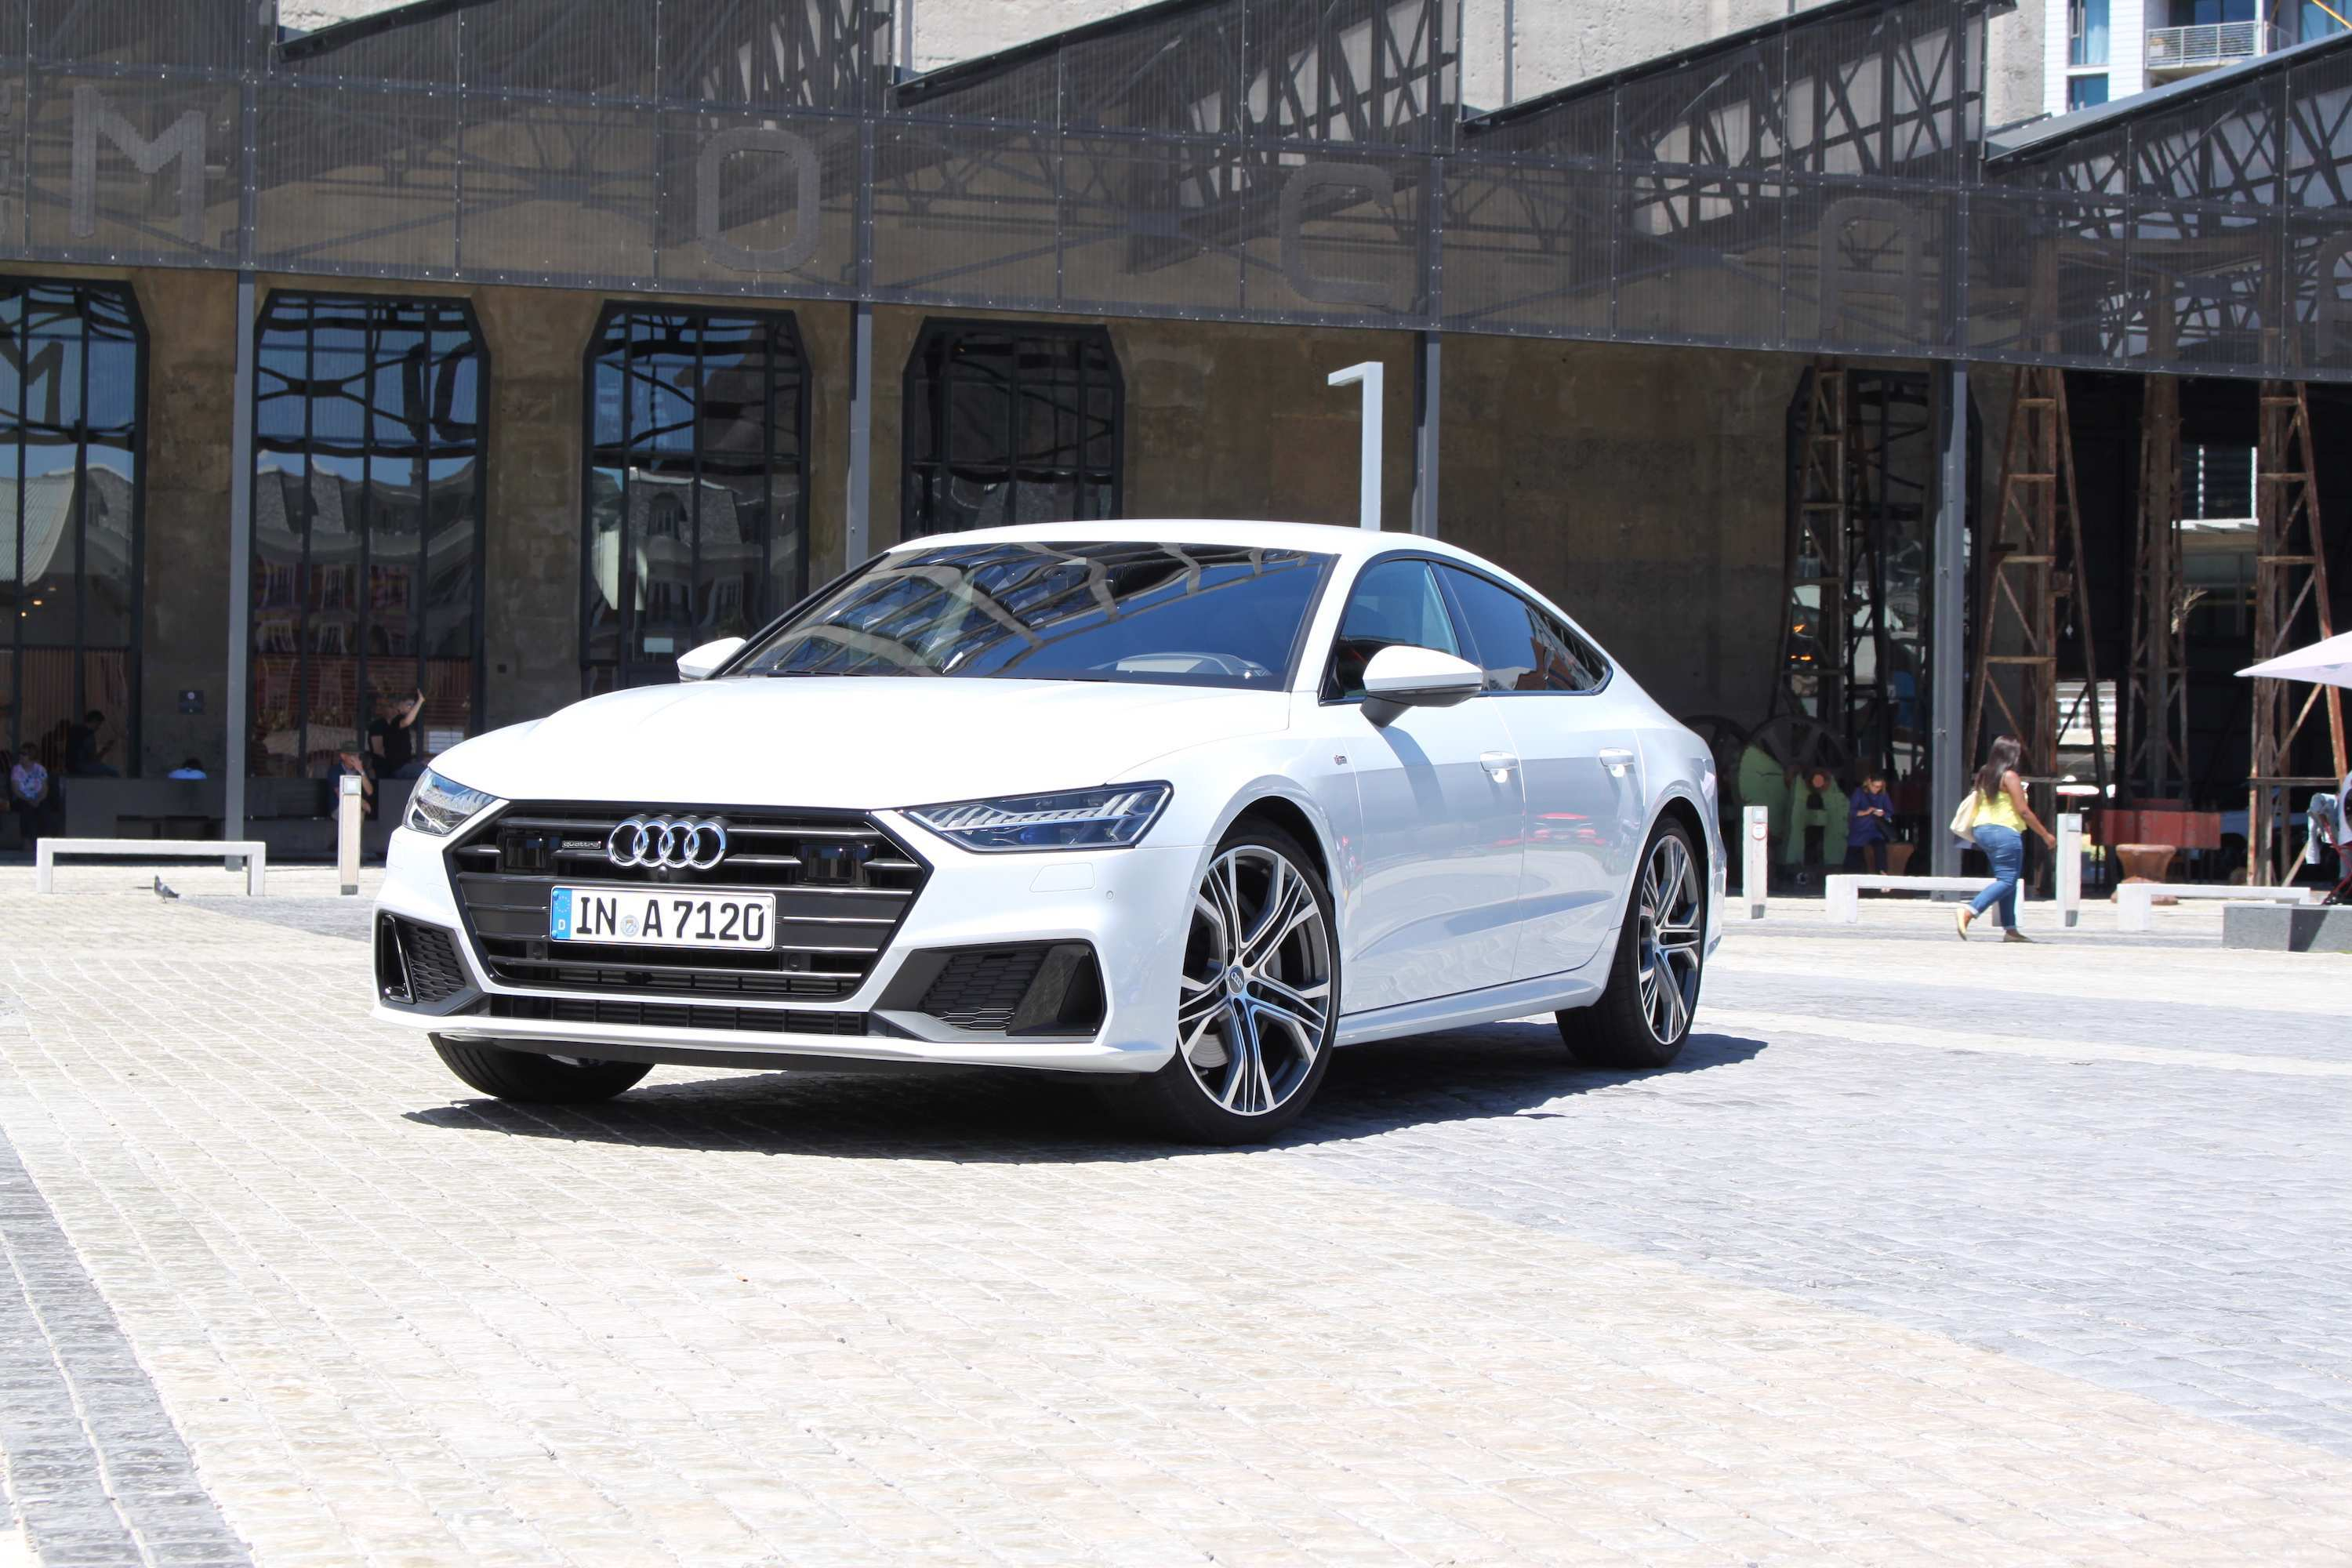 51 New 2019 Audi A7 Review Release Date for 2019 Audi A7 Review